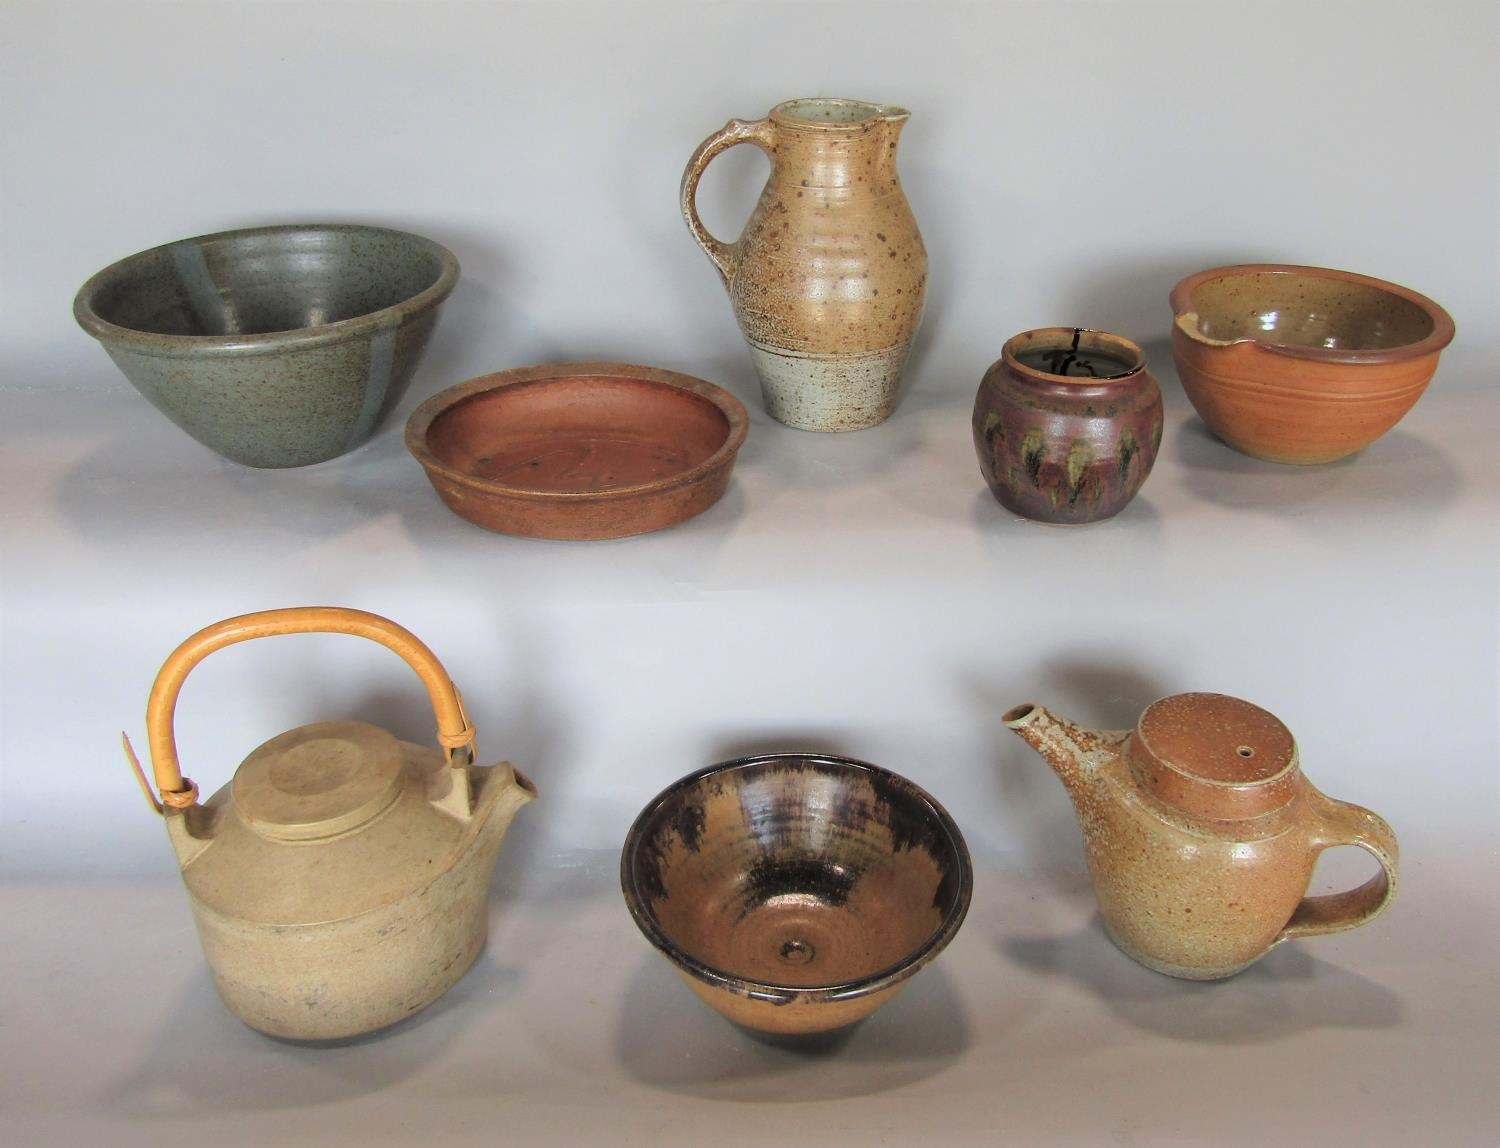 A collection of Studio pottery ware including teapot, bowls, etc by Winchcombe pottery and others